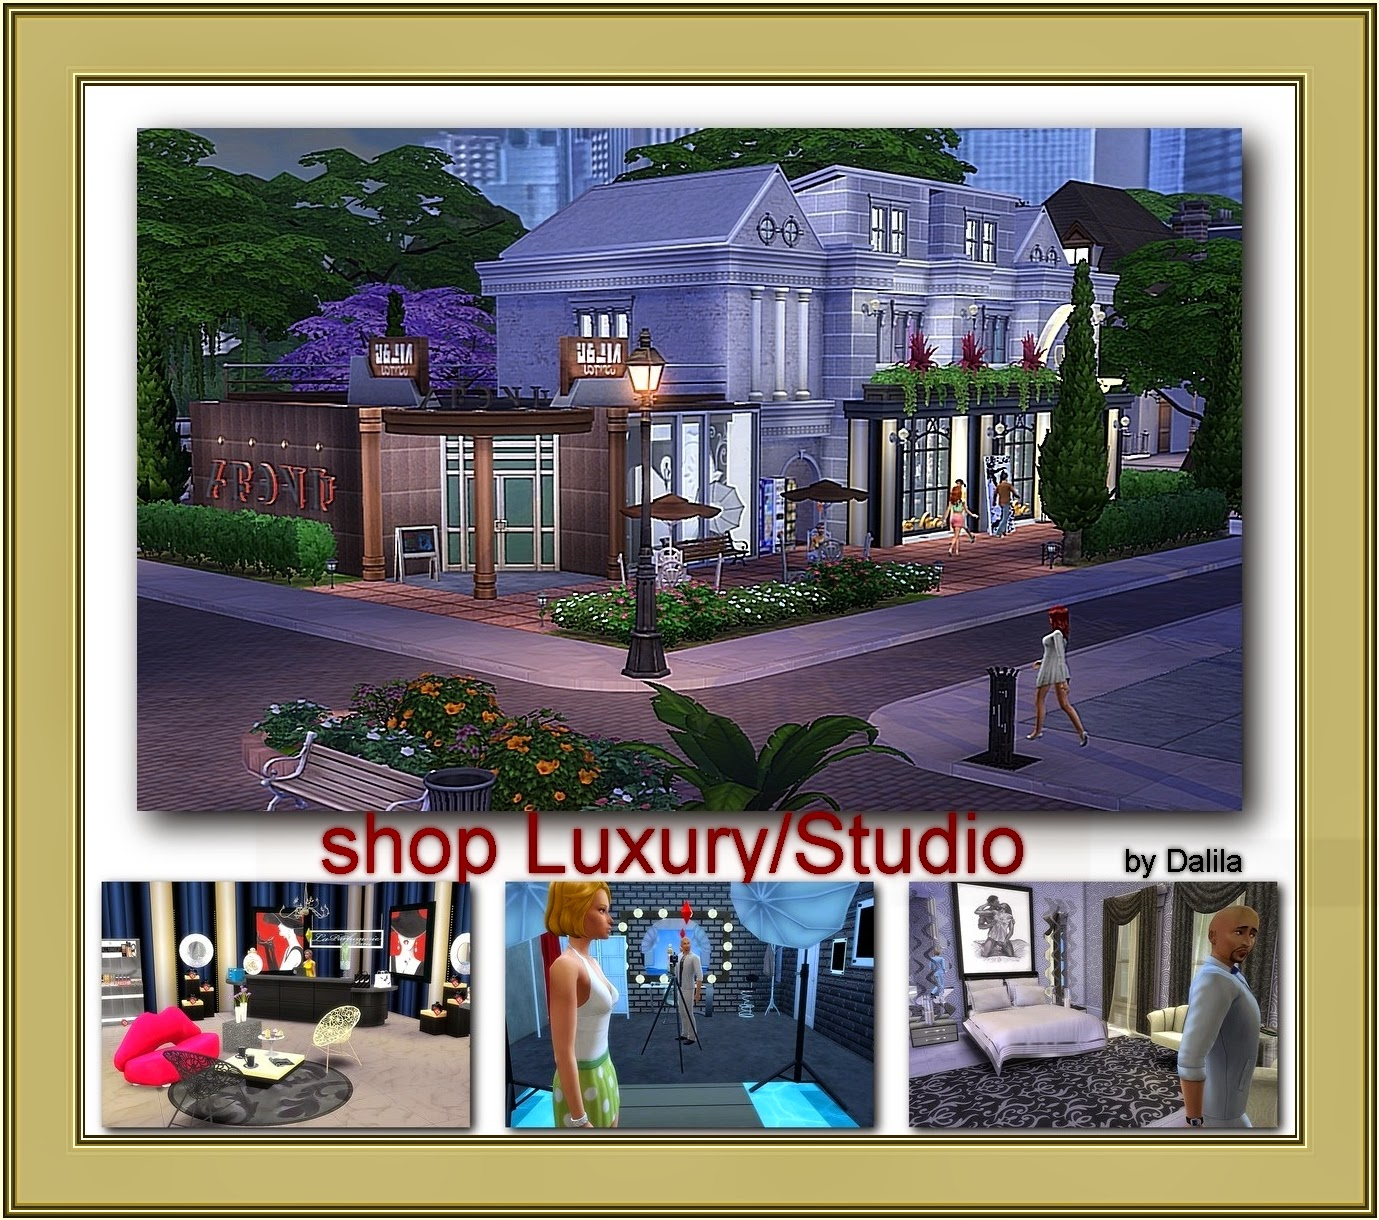 Shop luxury/Studio by Dalila